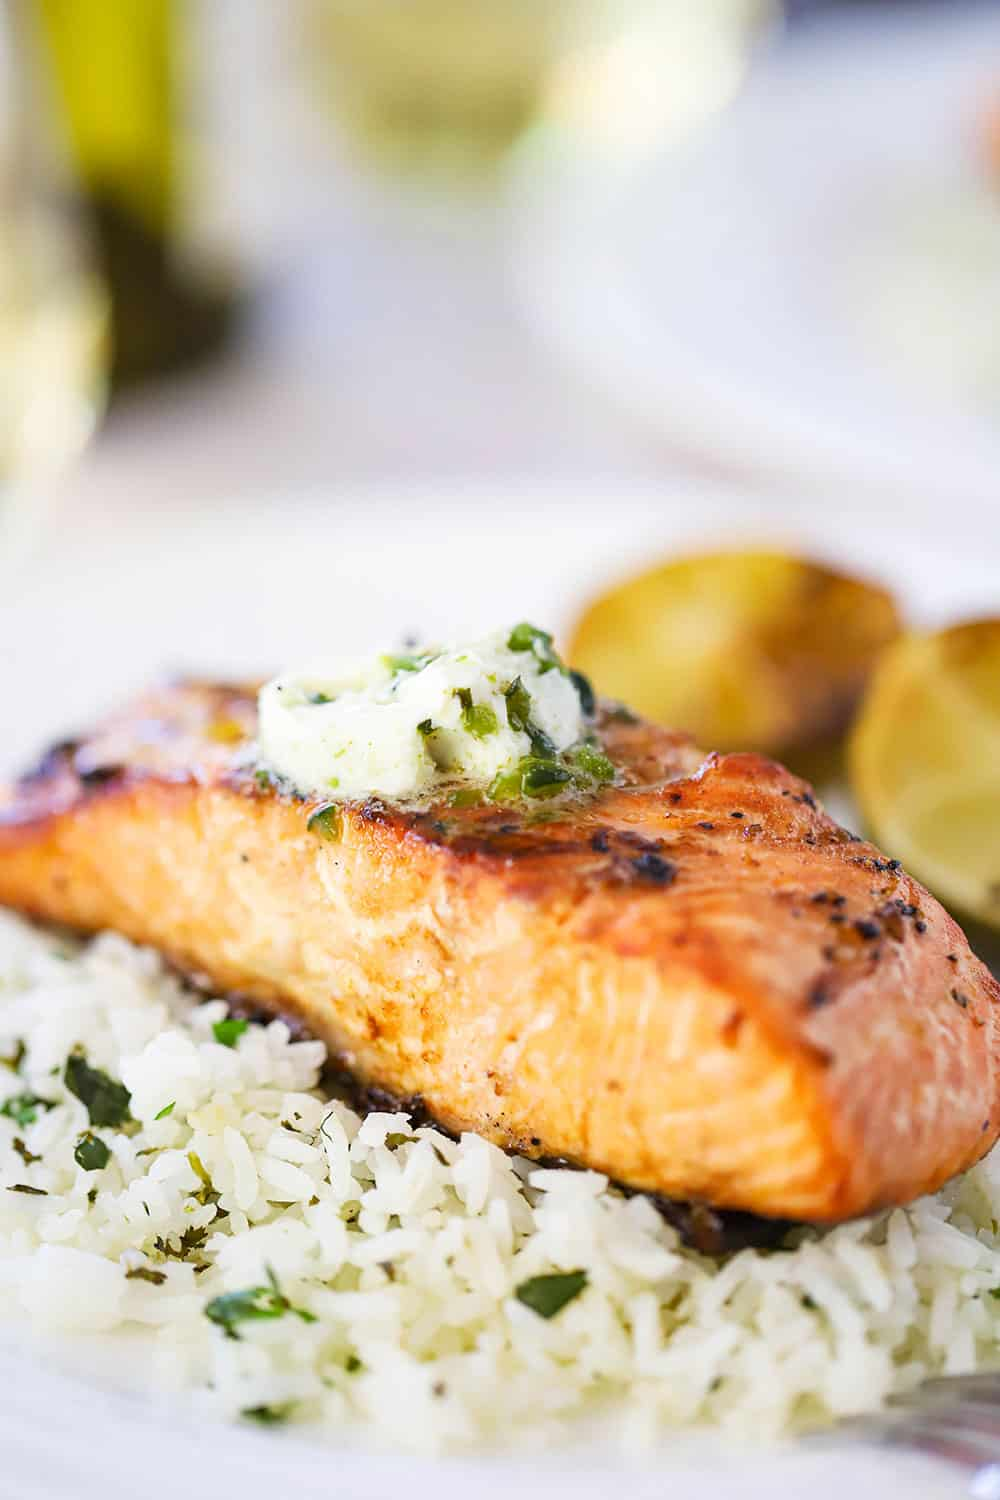 A close up view of a fillet of grilled salmon topped with a pad of melting poblano butter sitting on a bed of cilantro rice on a white plate.